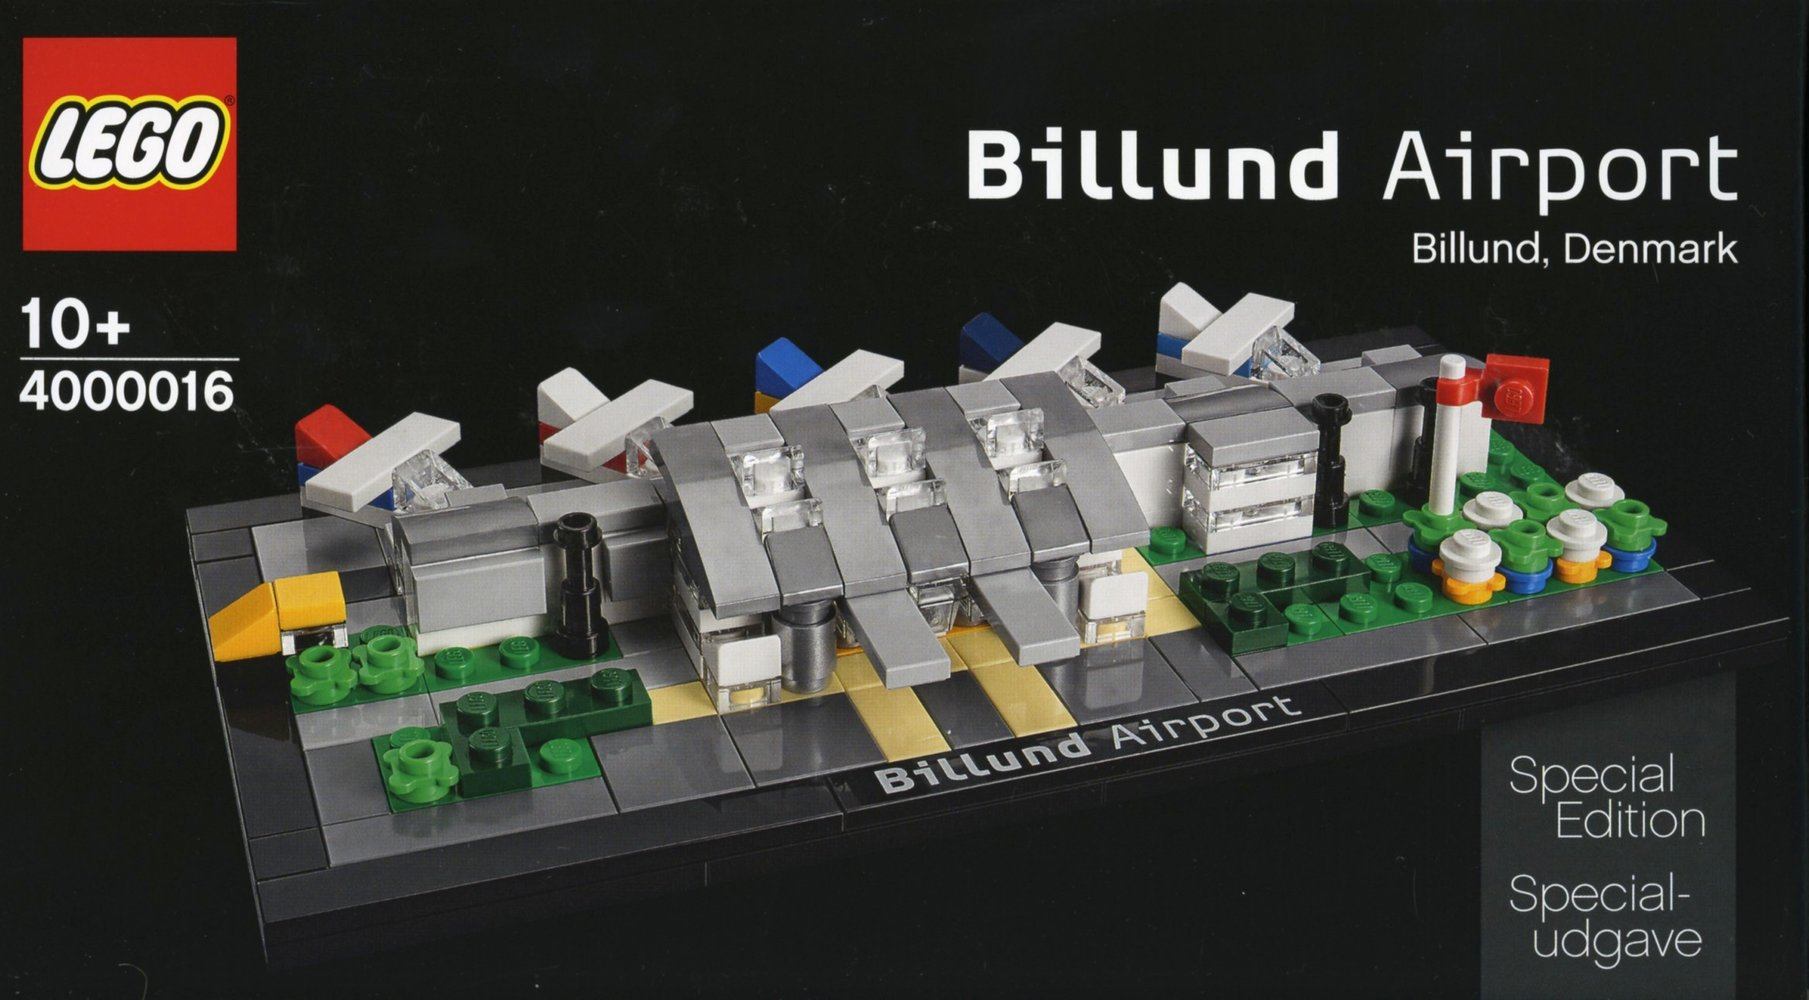 Billund Airport